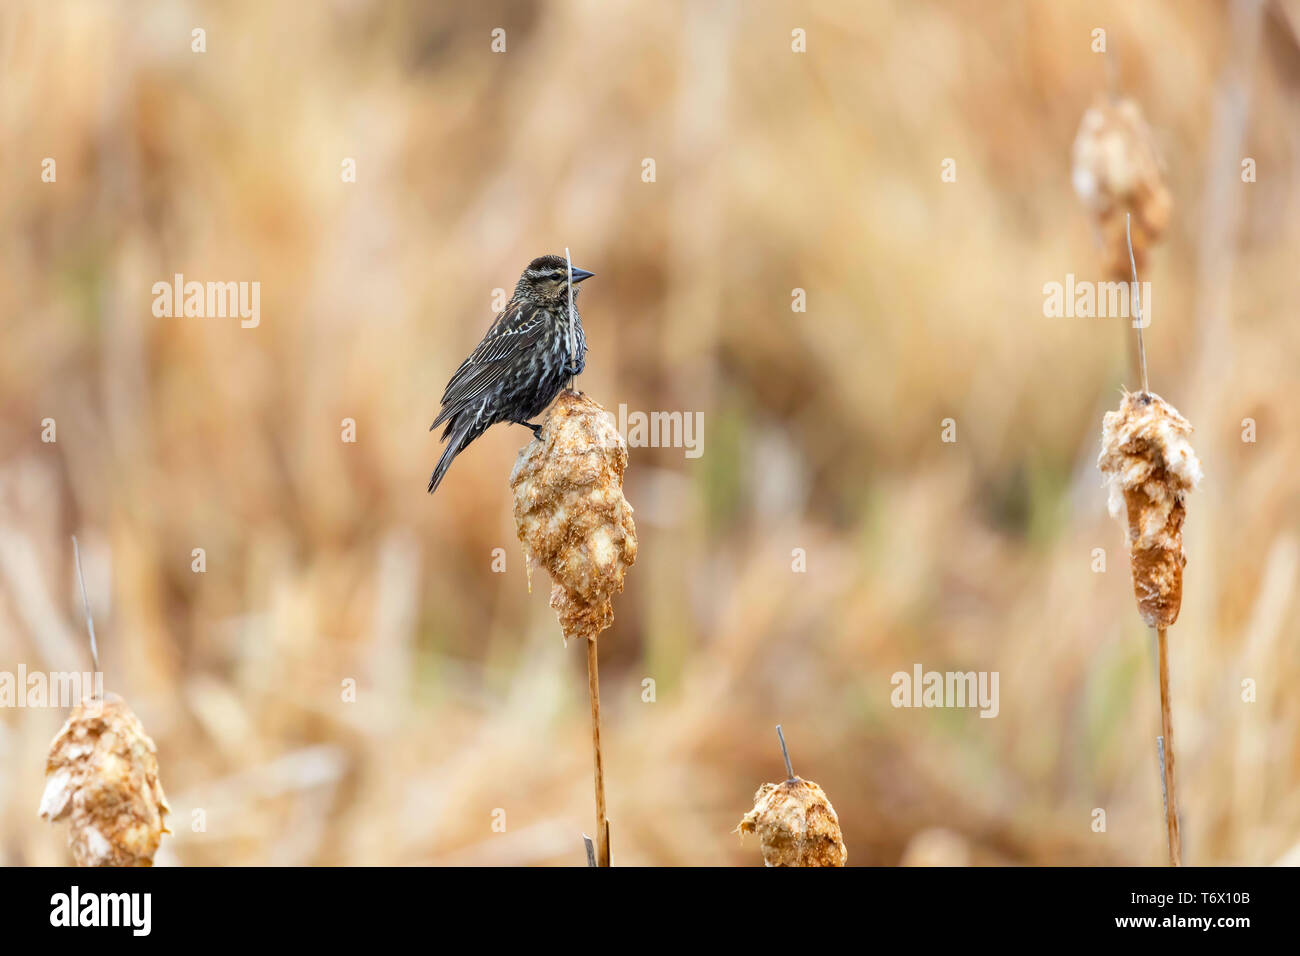 Female red-wing blackbird sitting on old reed.Natural environment in conservation Wisconsin area . - Stock Image